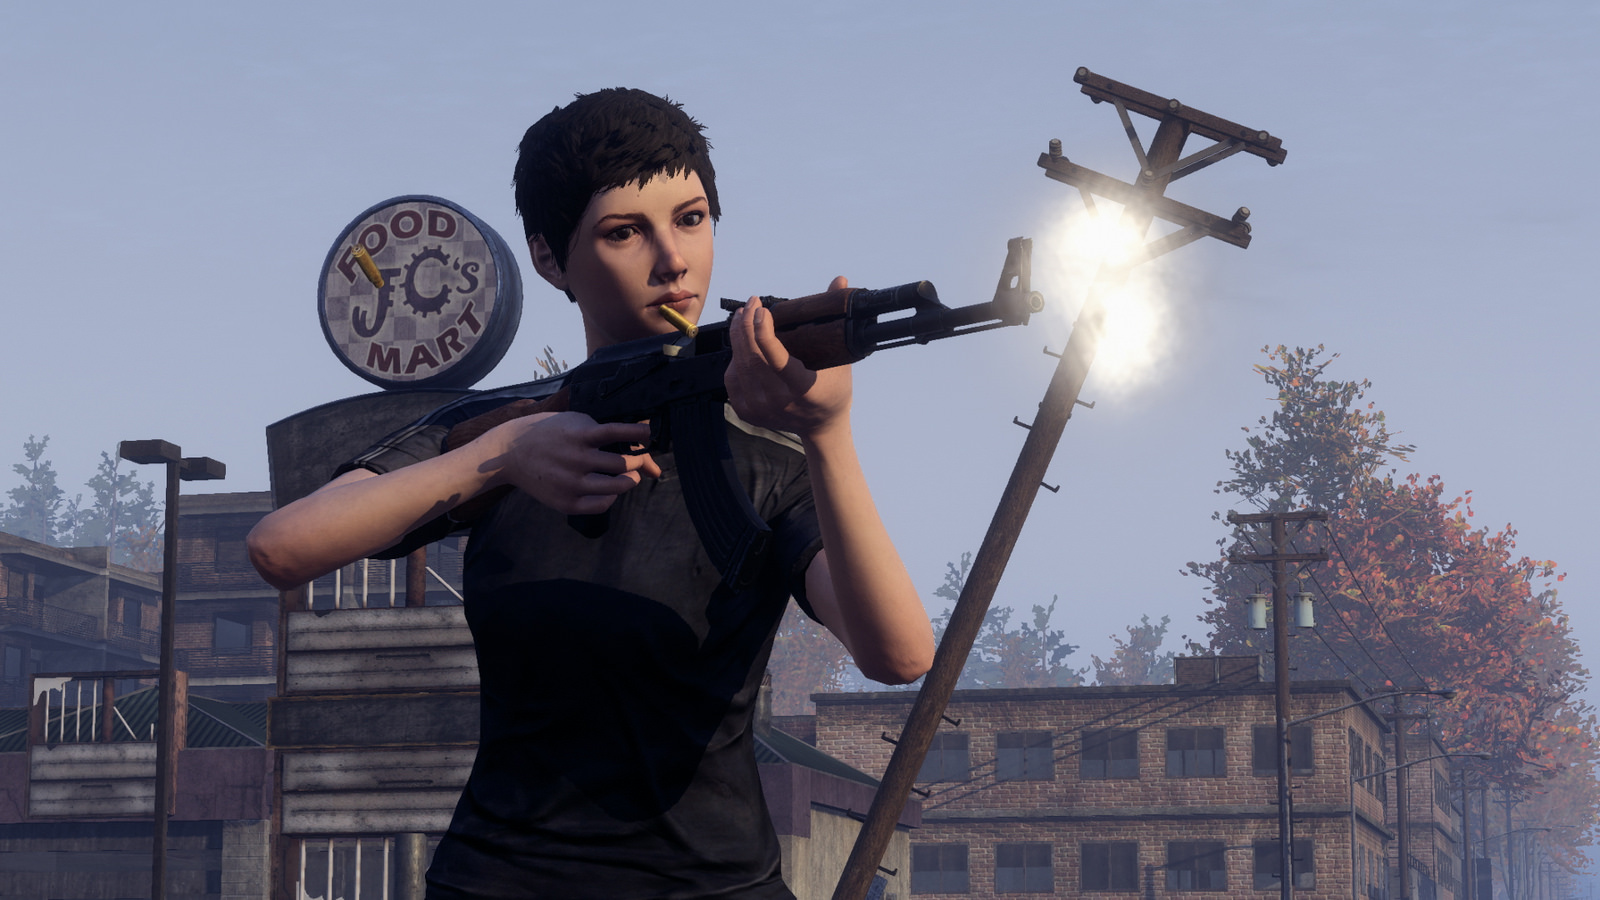 H1Z1 splits in two, multiplayer arena spin-off hits PC, Xbox